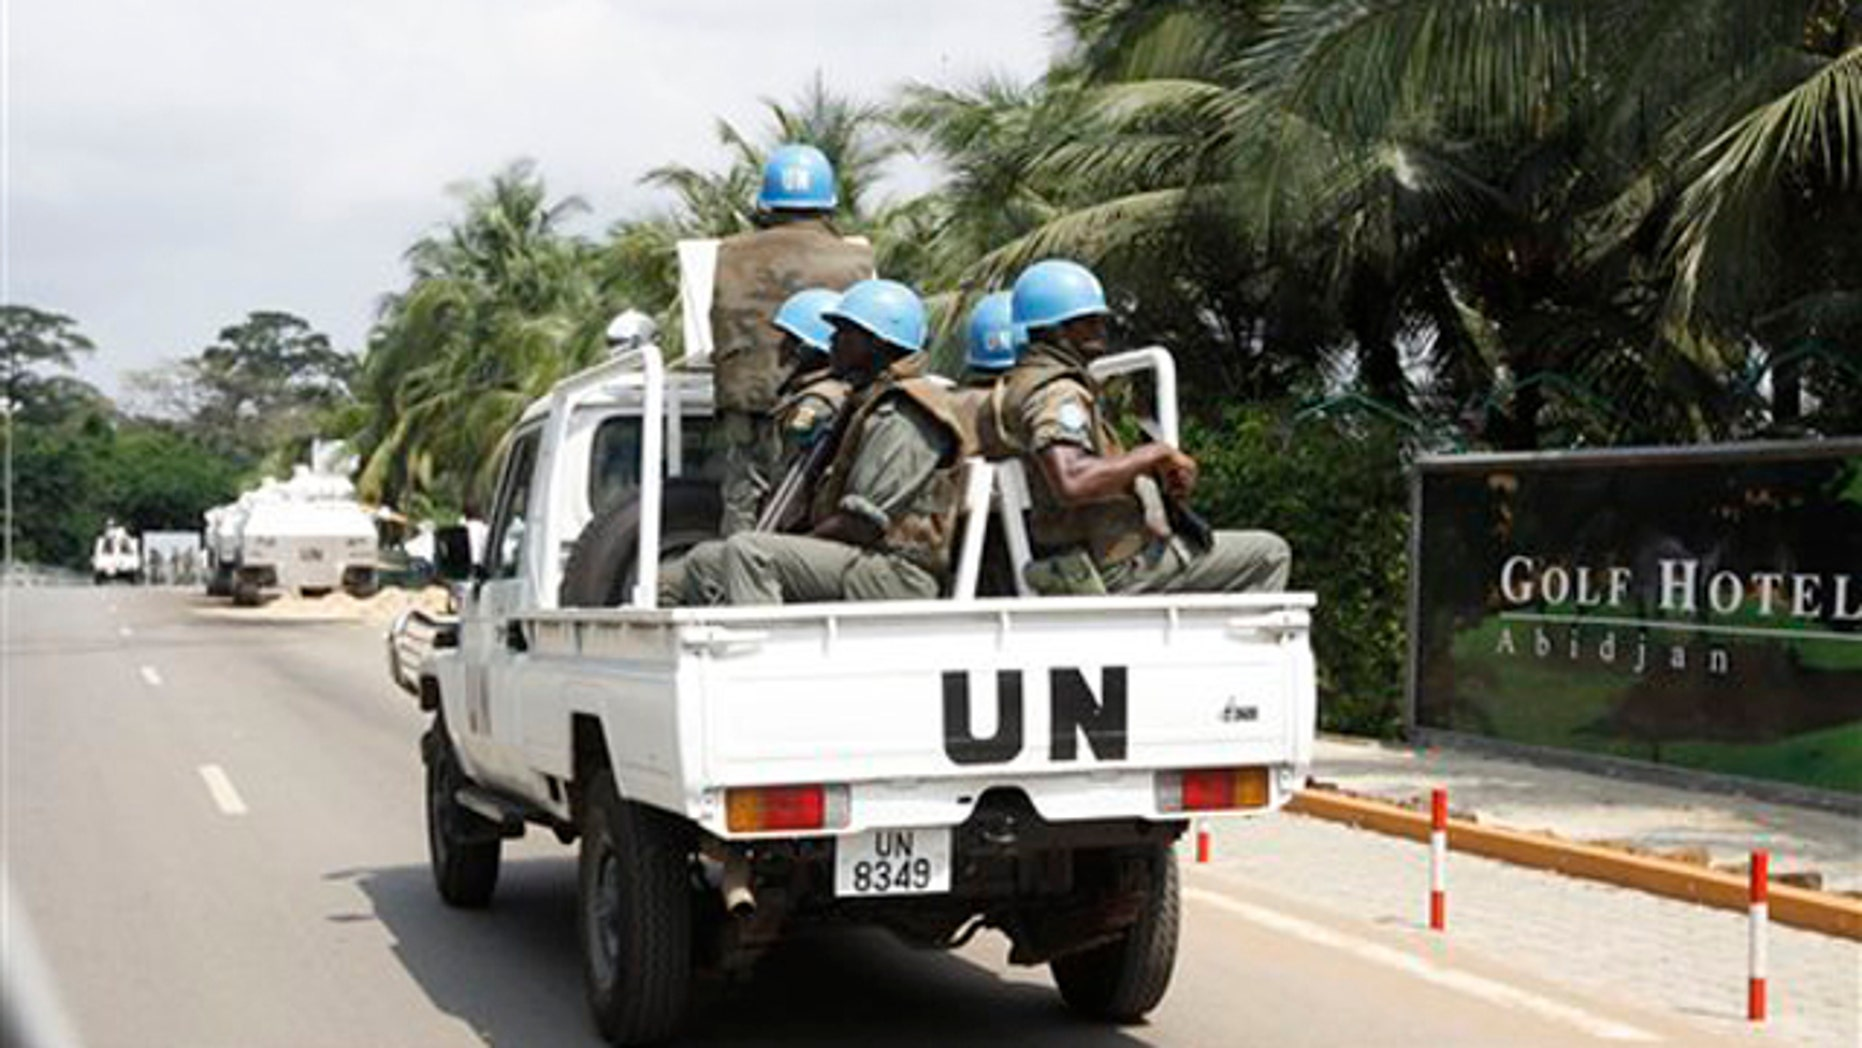 Dec. 23, 2010: U.N. forces patrol outside Golf Hotel in Ivory Coast, Abidjan. The United Nations said that at least 173 people have been killed and dozens of others have gone missing or been tortured following Ivory Coast's disputed presidential election, which has prompted fears of a return to civil war.